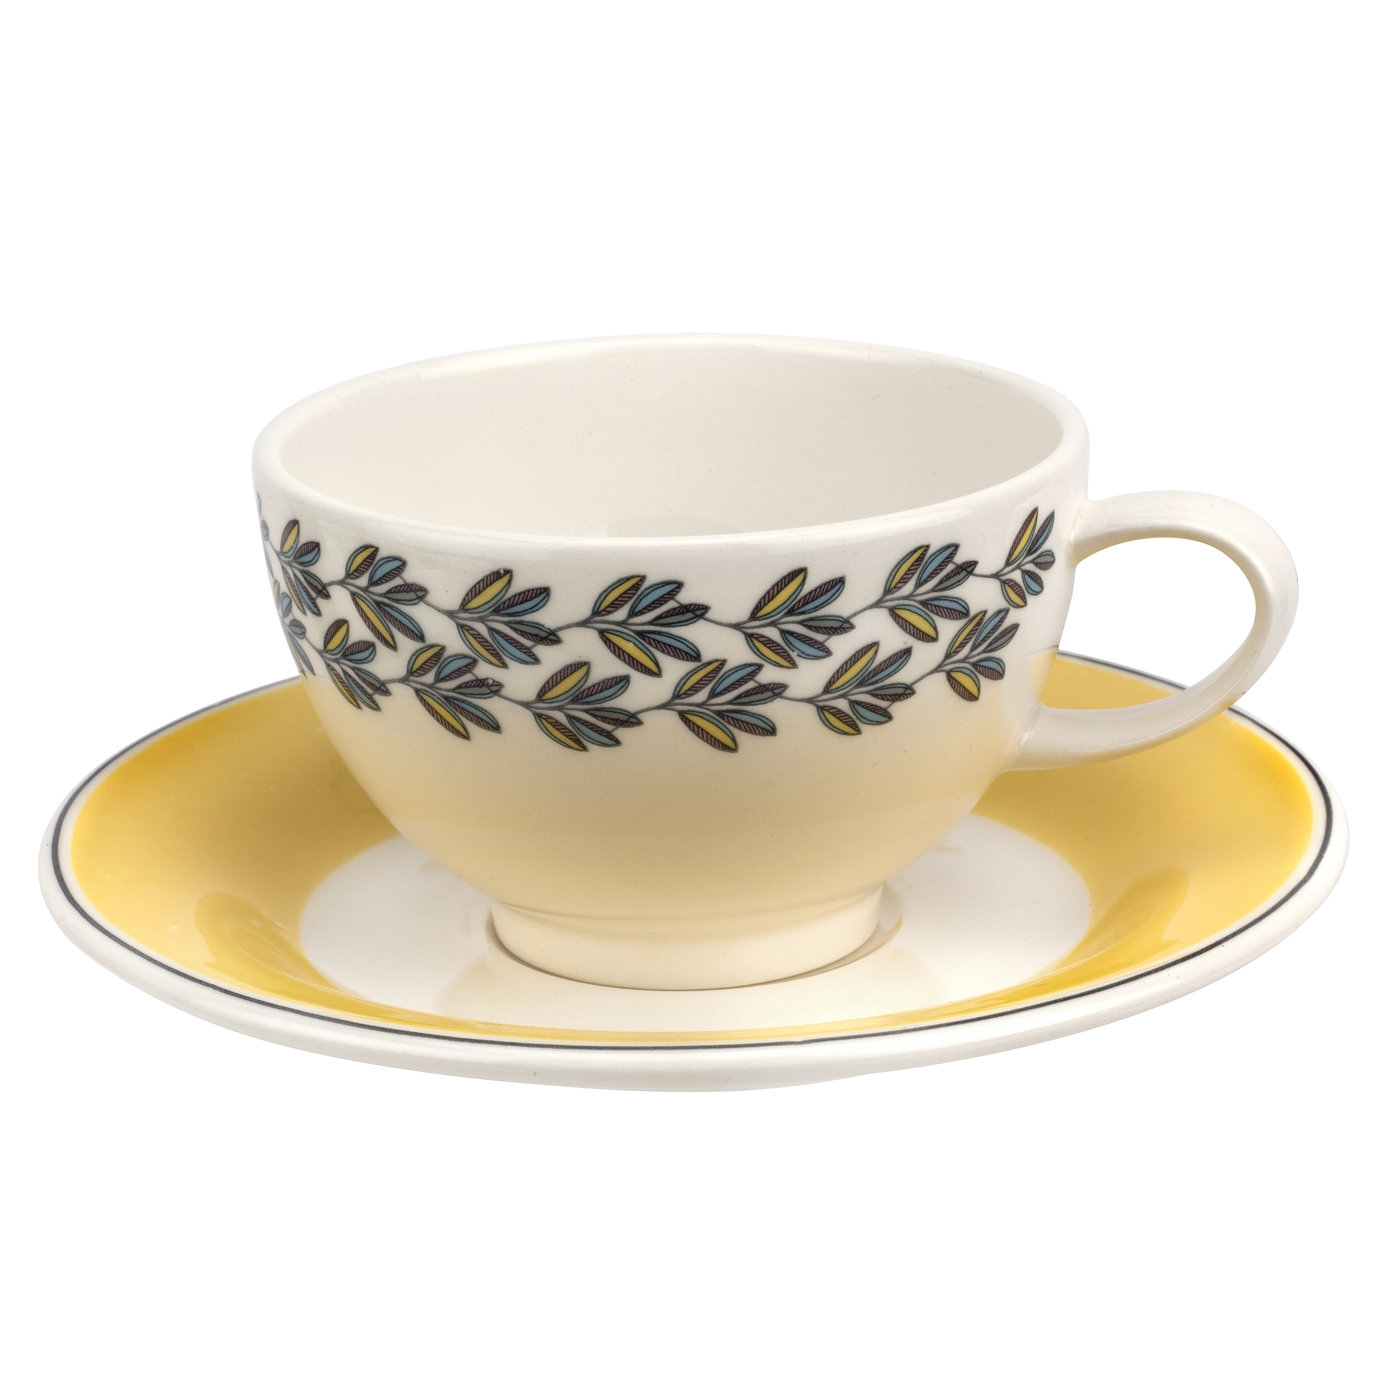 Portmeirion Westerly Yellow Teacup  image number 0